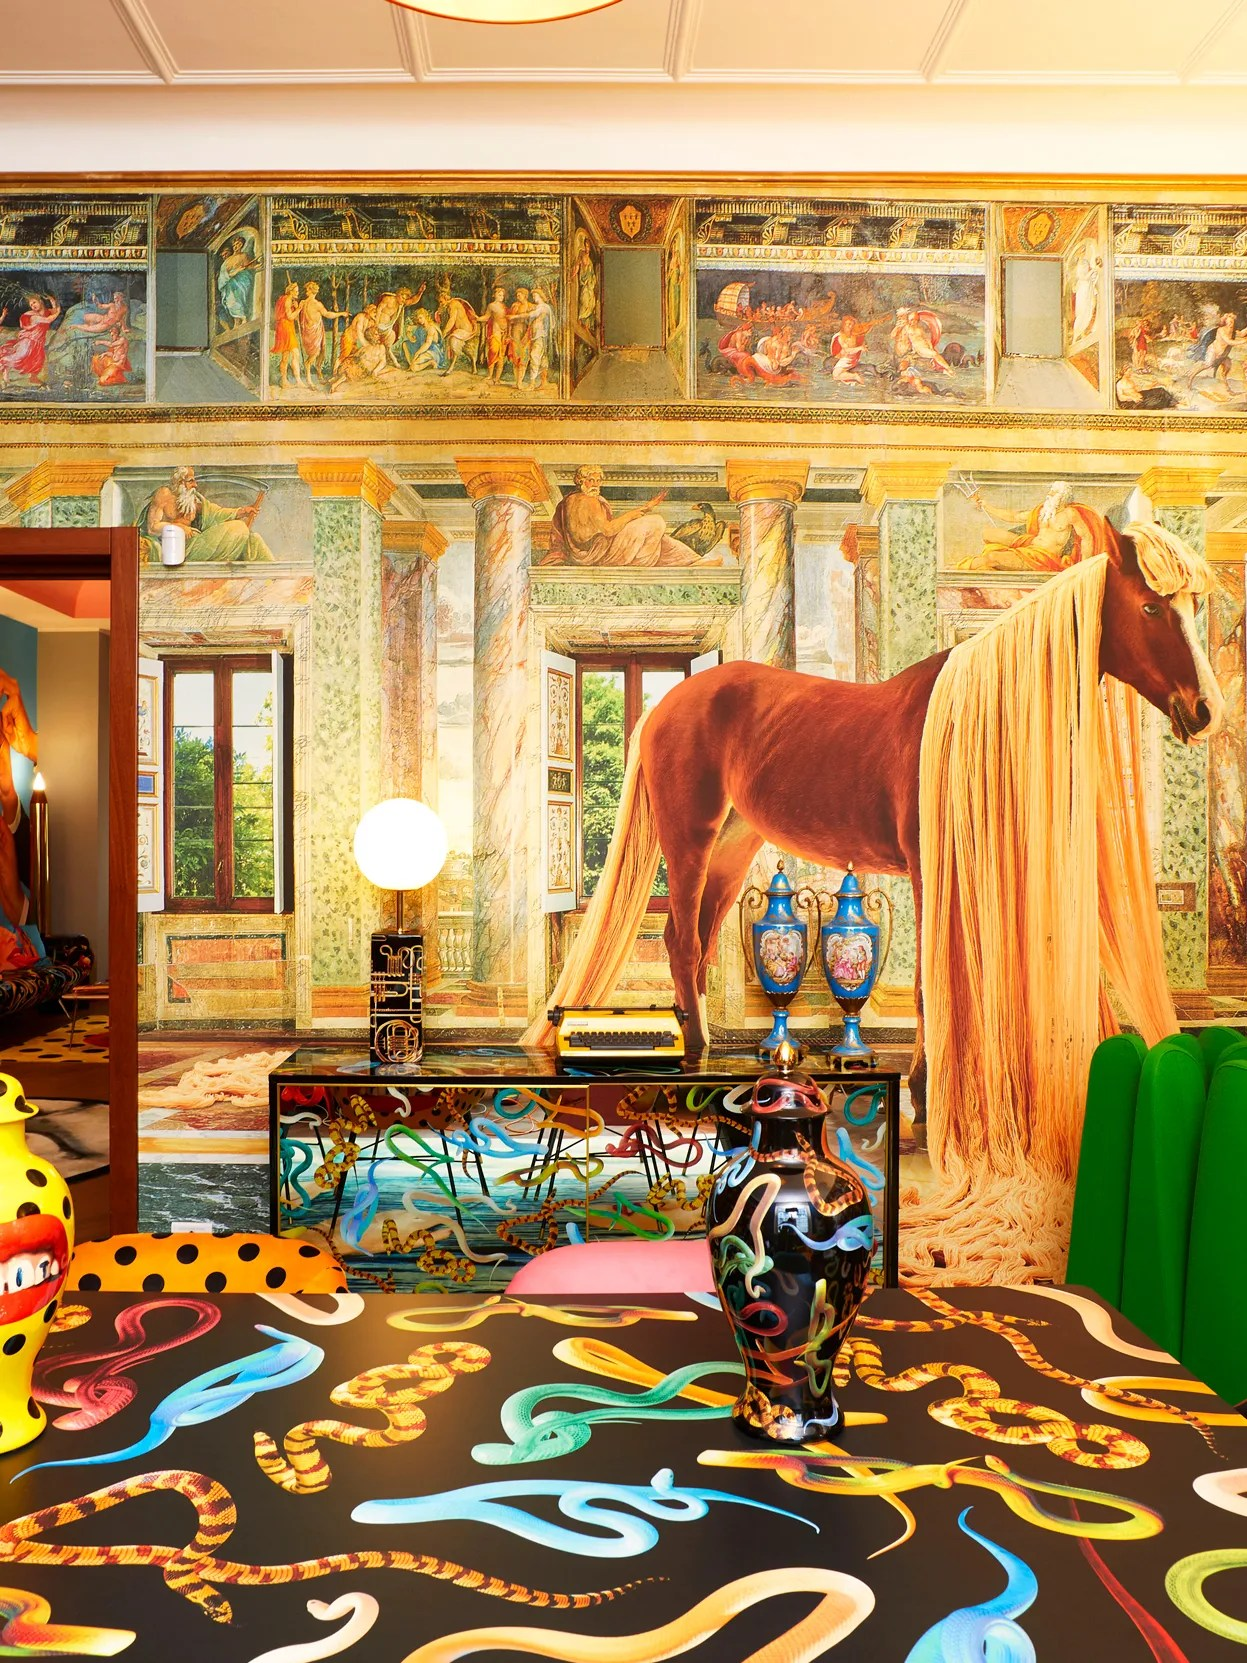 It's an exciting time for the horse too. Milan Design Week 2021 Hermes S Spectacular Installation Digital Art From Nilufar And A Decidedly Irreverent Lunch Architectural Digest